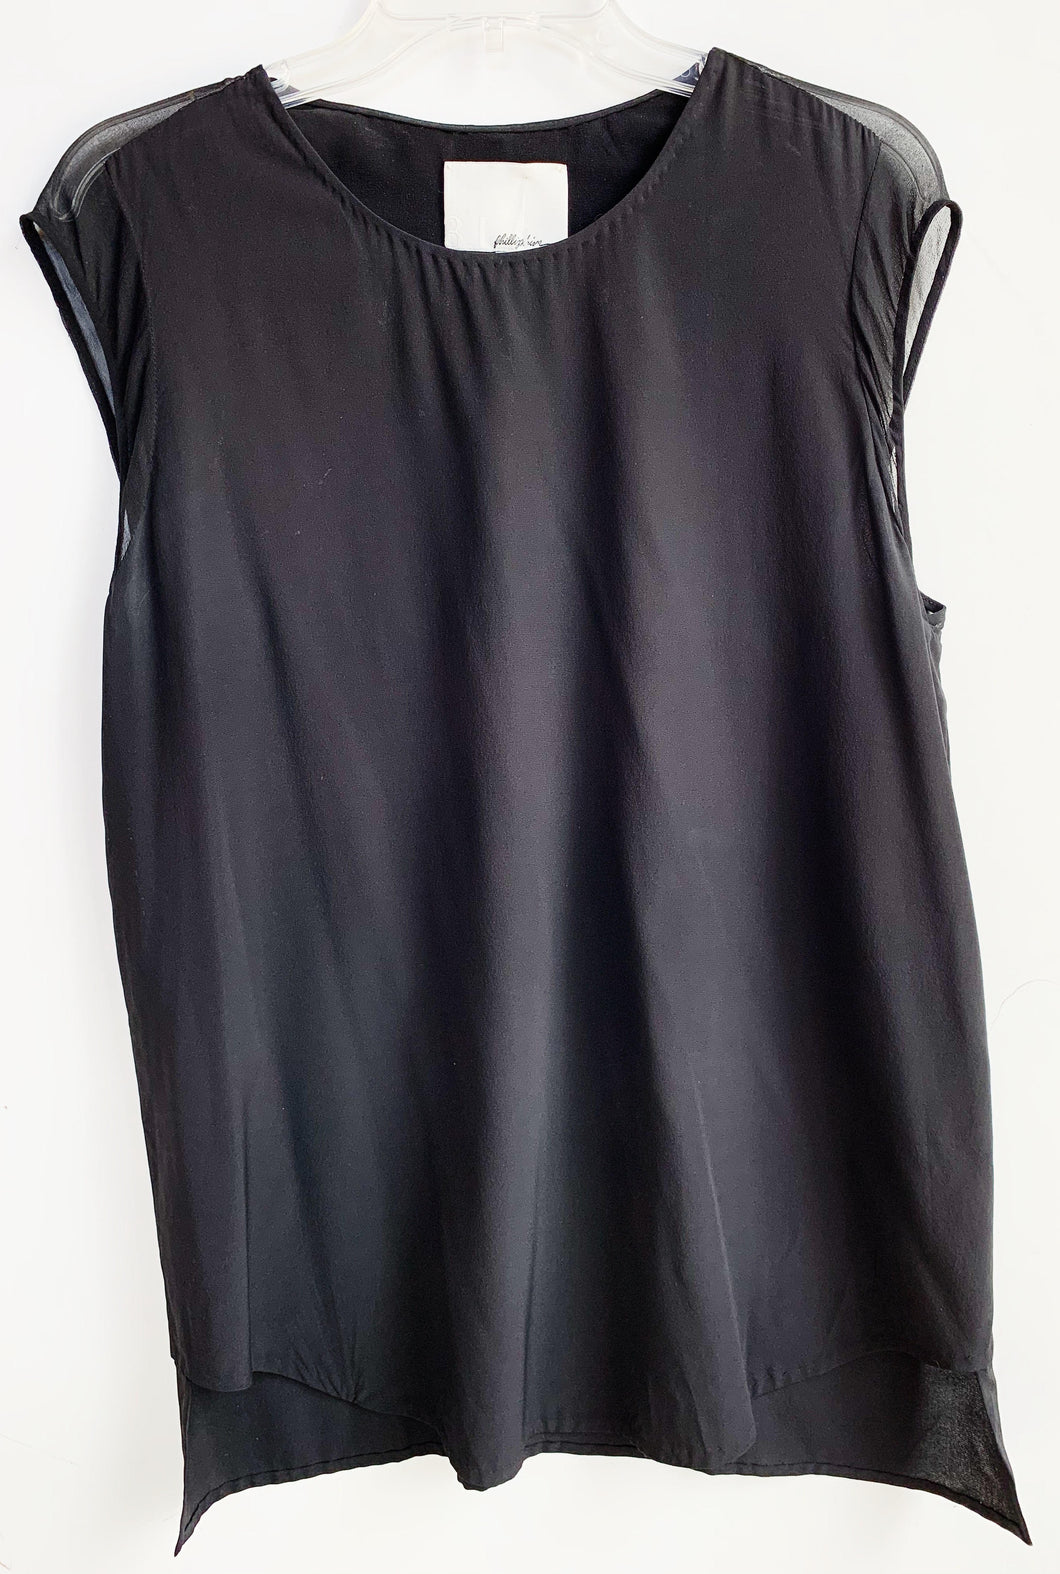 Phillip Lim Silk Top Size 6